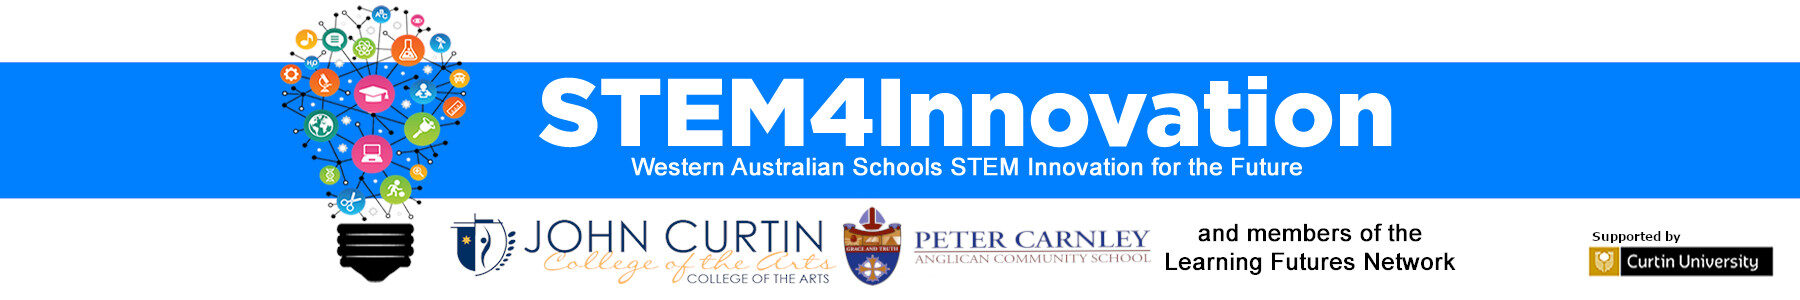 STEM4Innovation